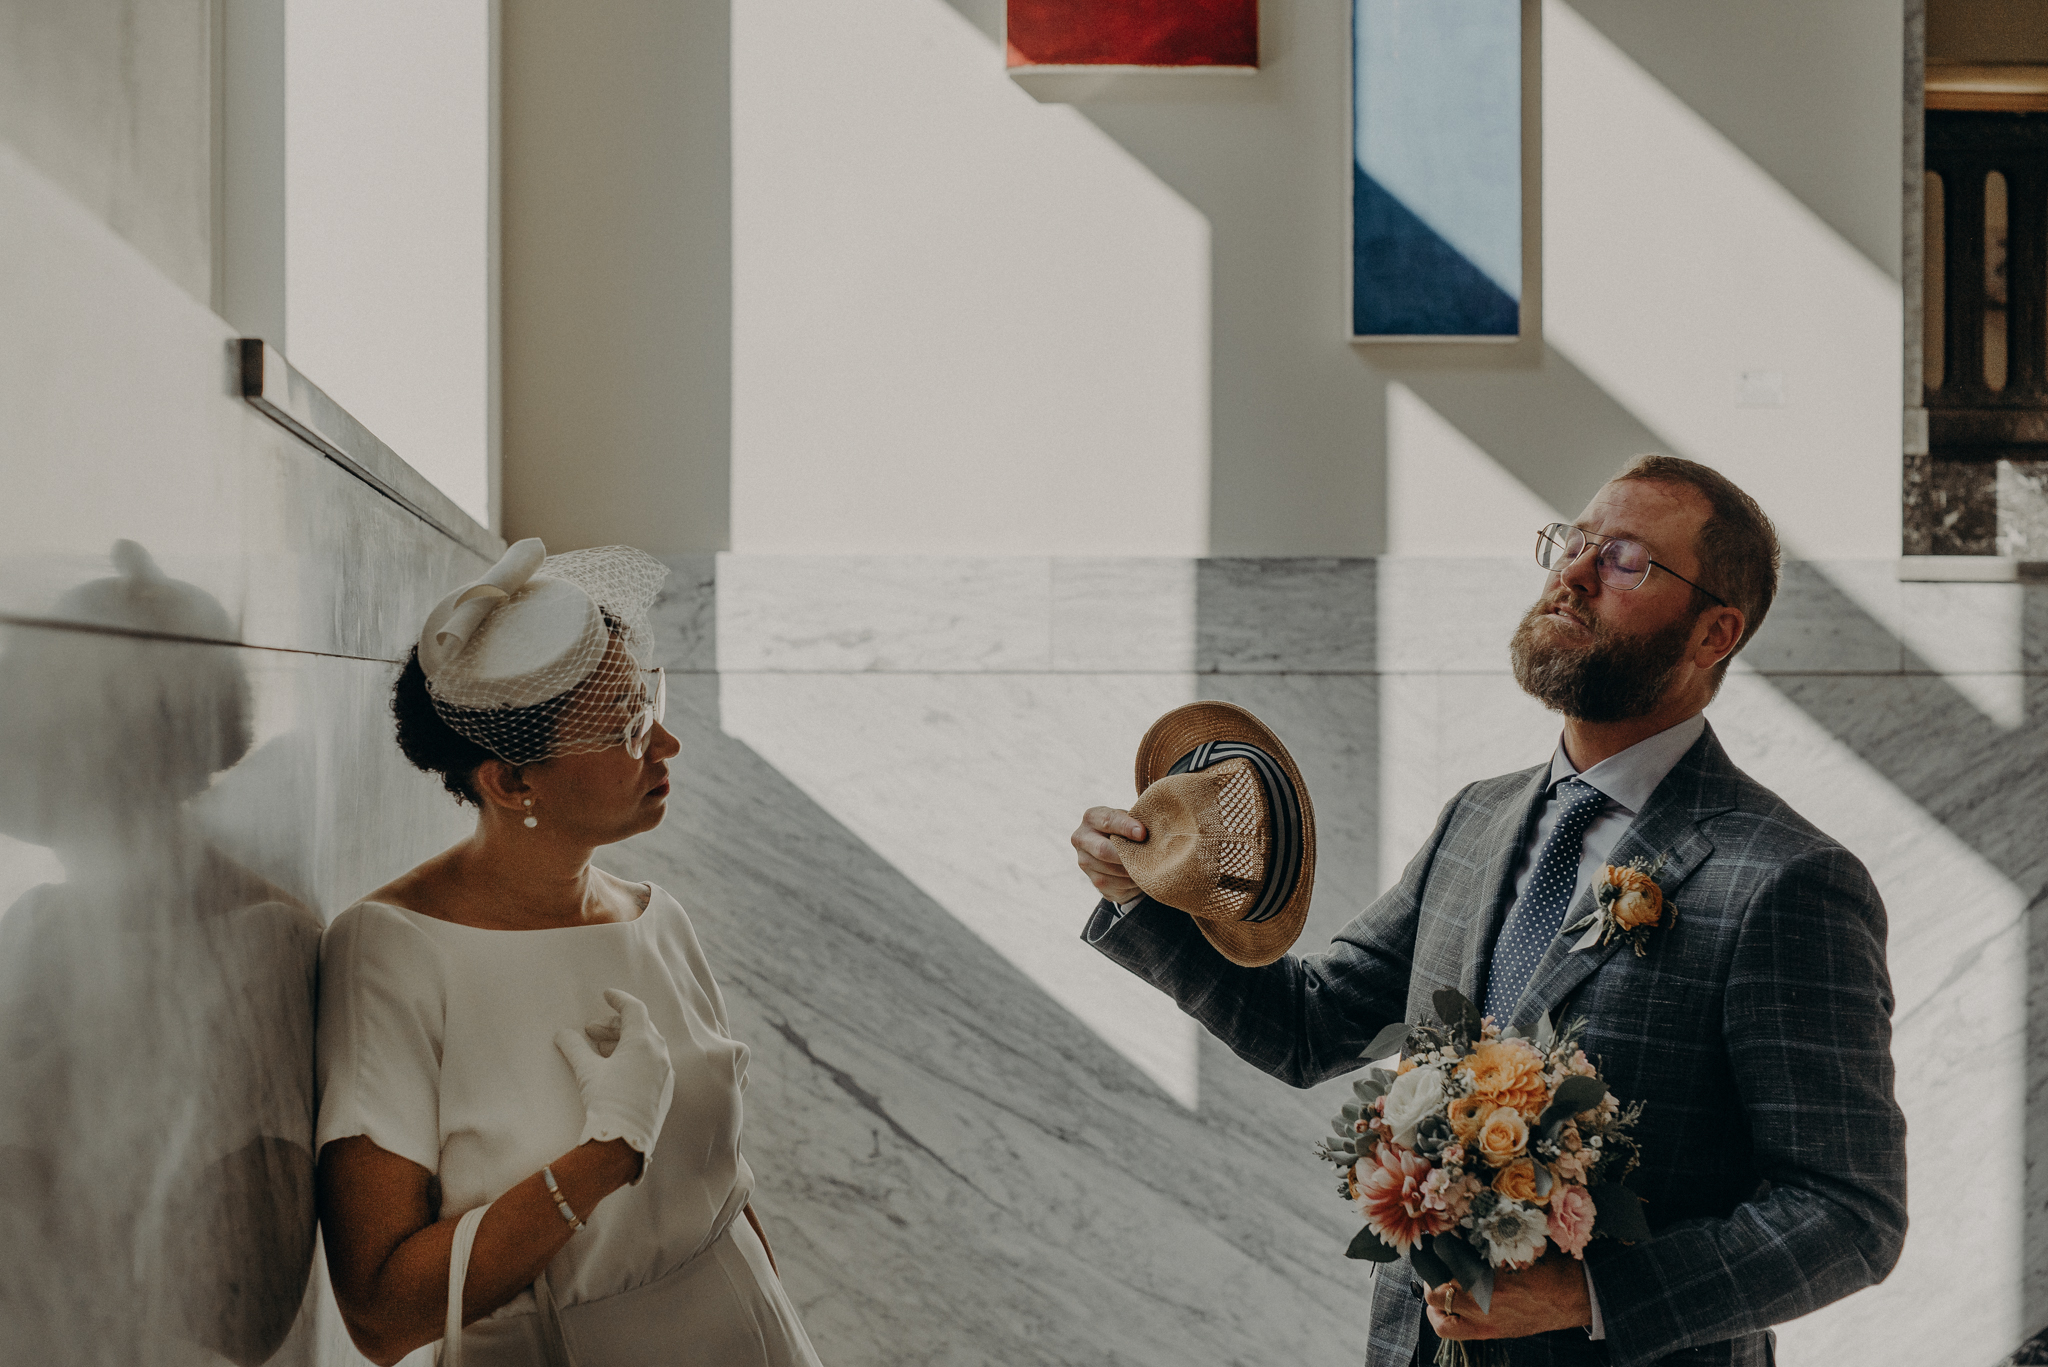 Los Angeles Wedding Photographer - Portland Elopement Photographer - IsaiahAndTaylor.com-034.jpg